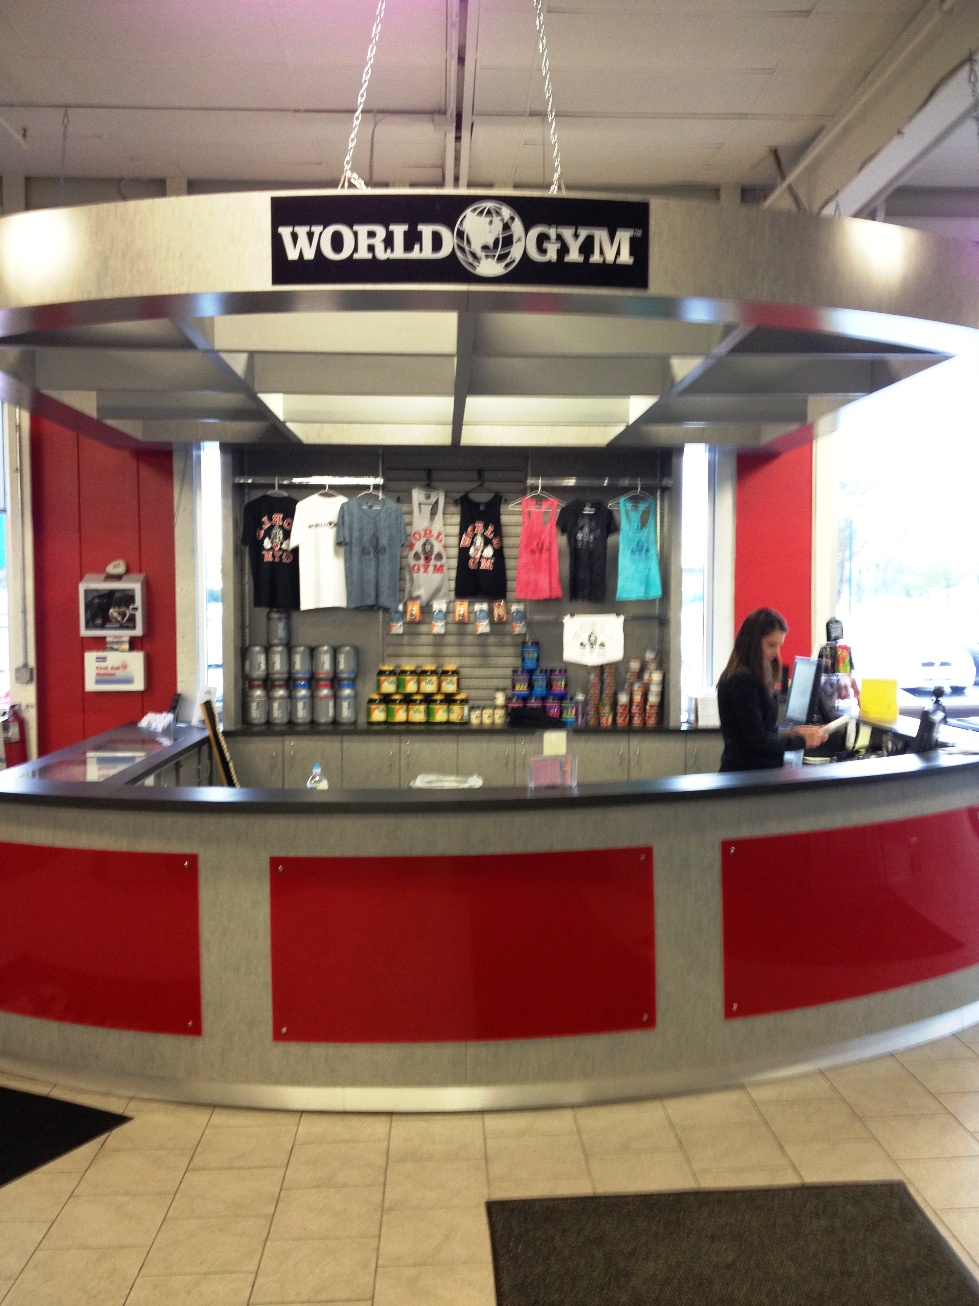 Fitness Center Reception Desk For World Gym Creative